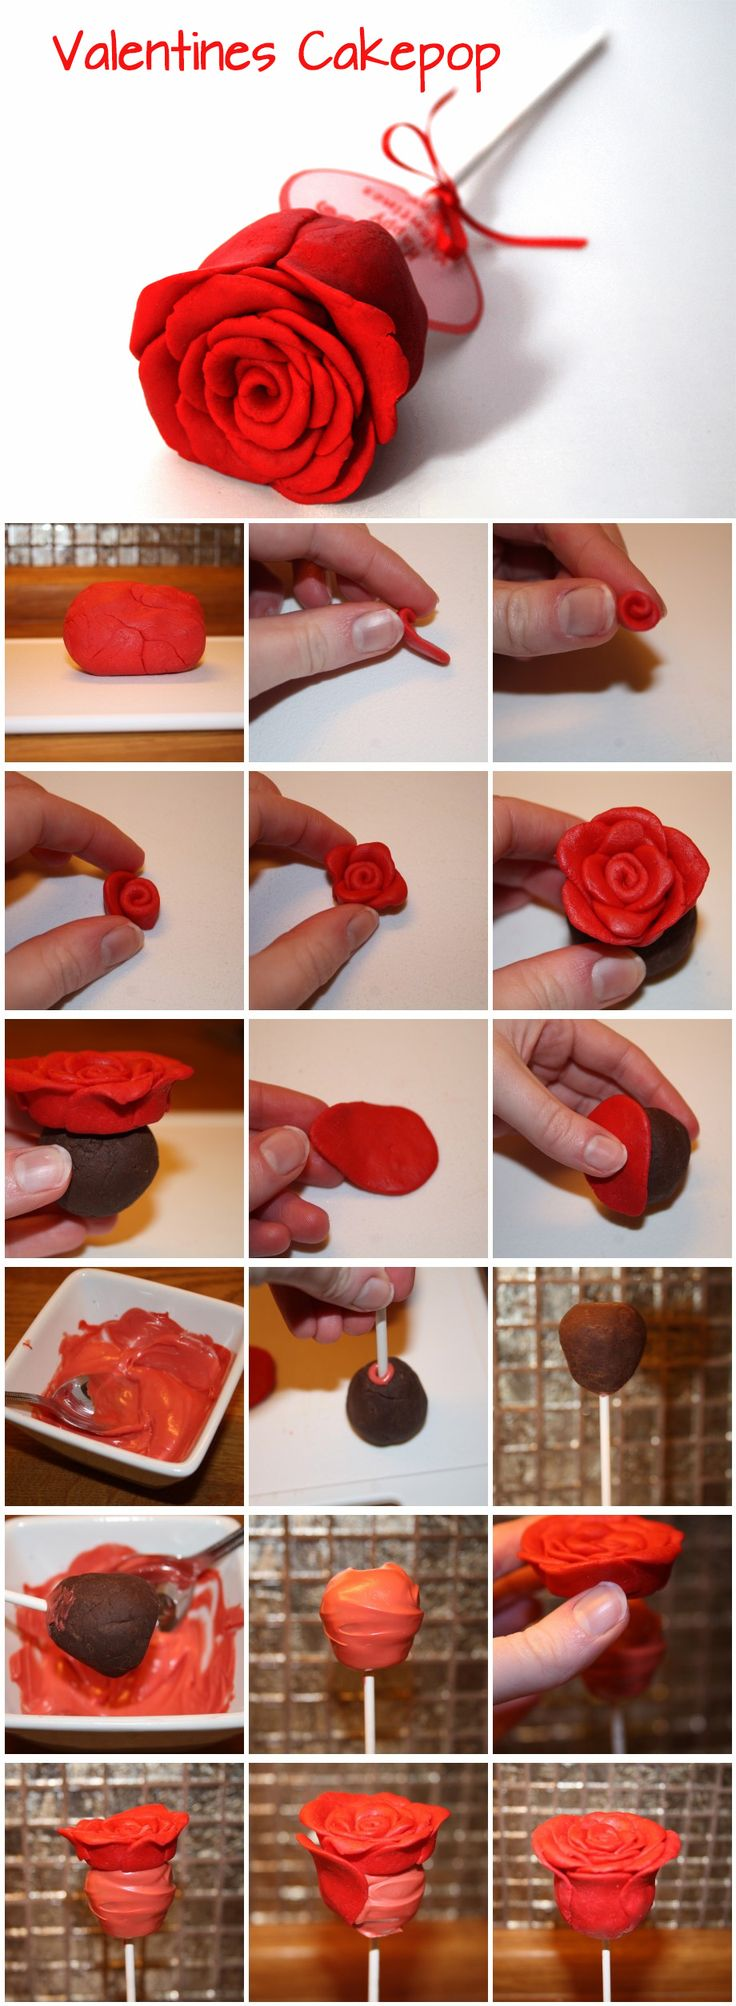 Valentines Cake pop - For all your Valentine Day cake decorating supplies, please visit http://www.craftcompany.co.uk/occasions/valentines-day.html